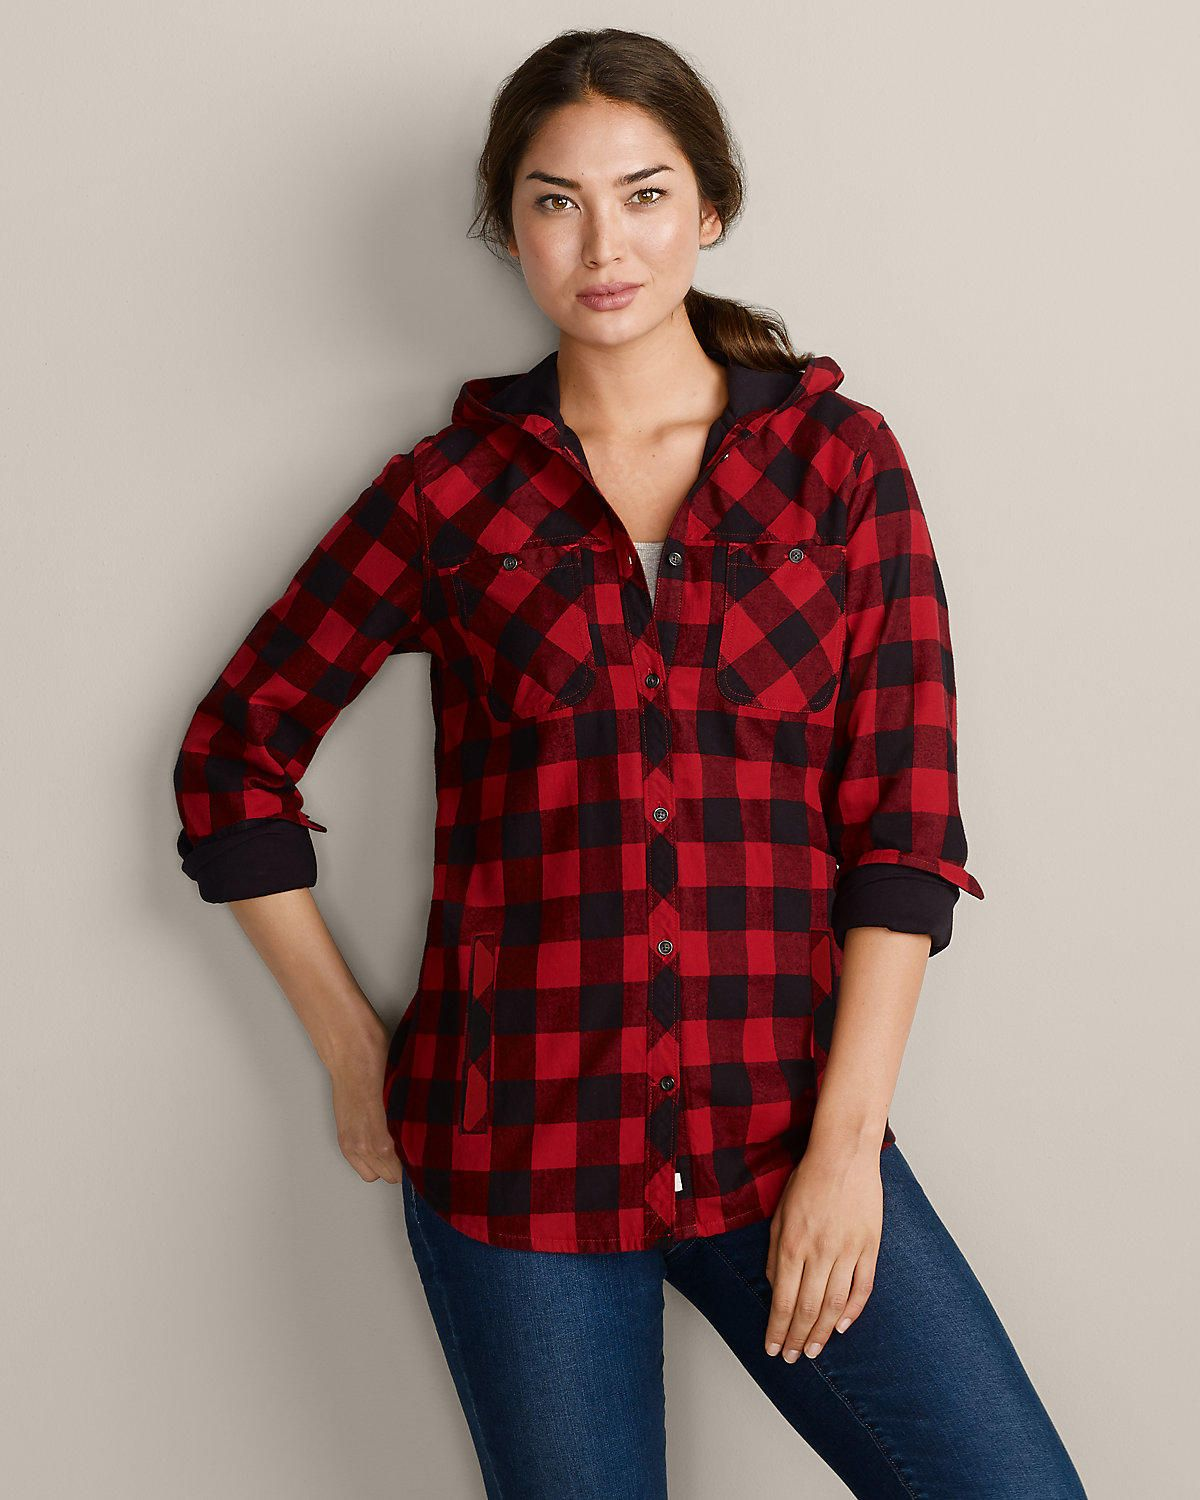 Flannel shirt women  red and white flannel women  Google Search  FallWinterClothes